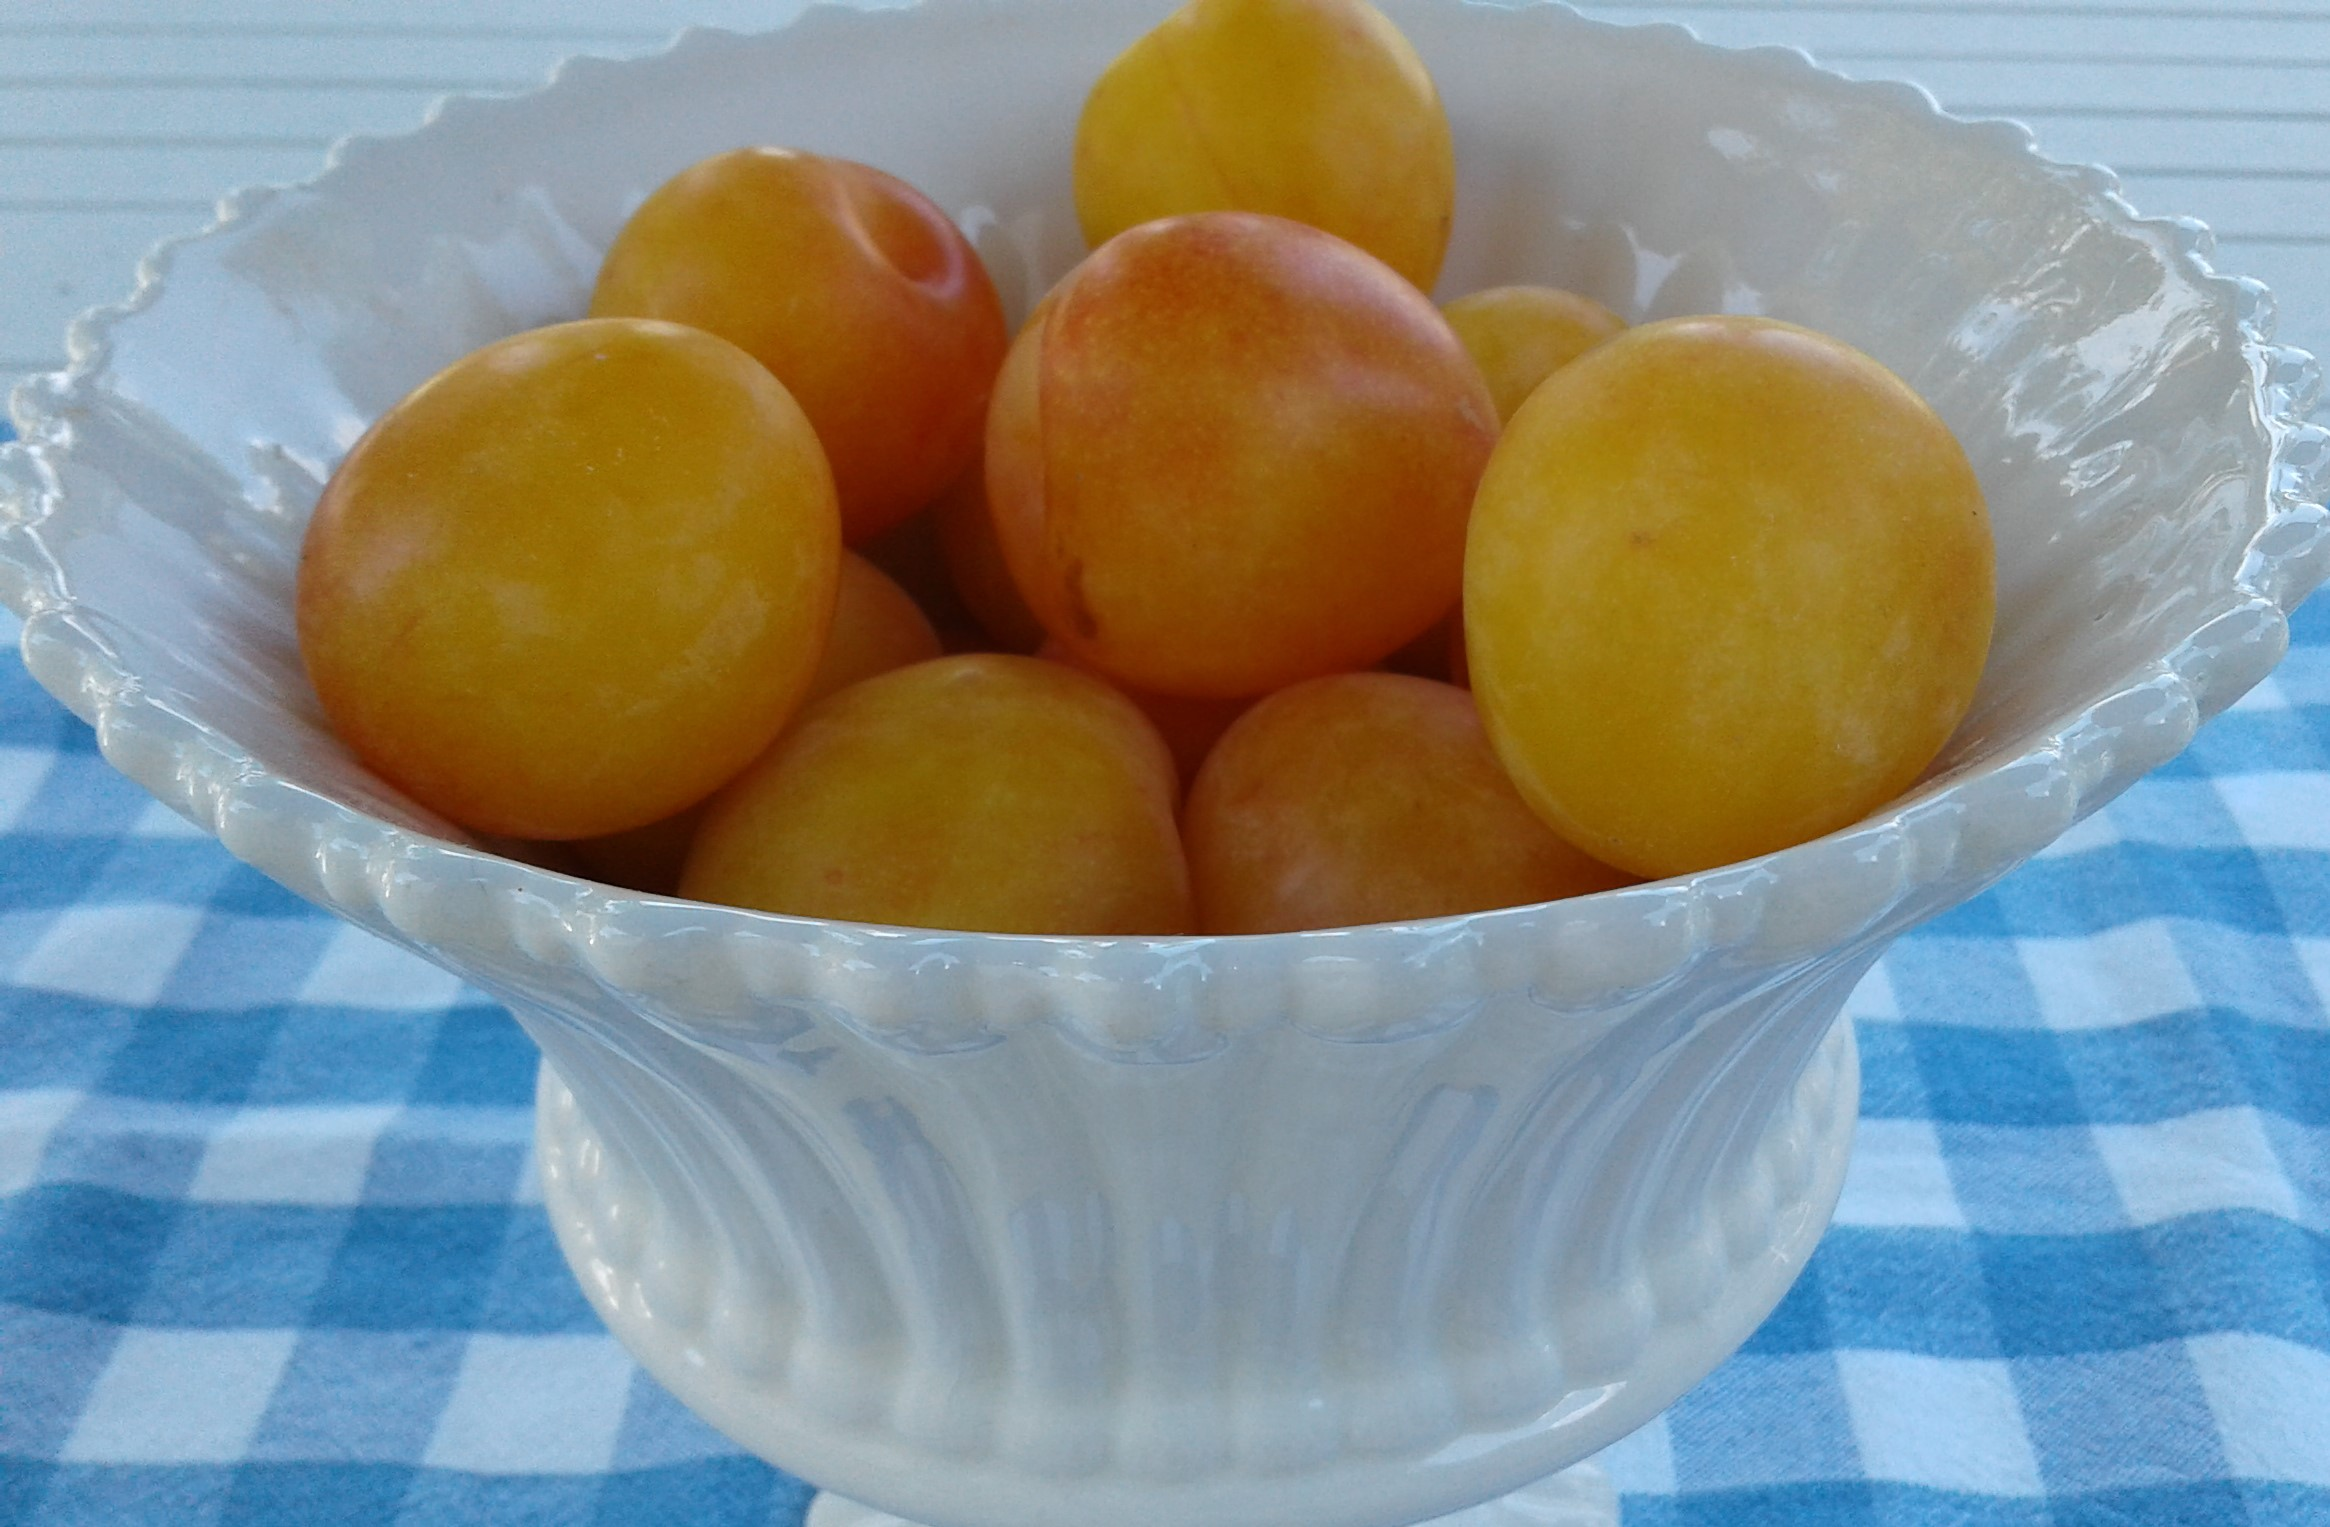 Plums yellow